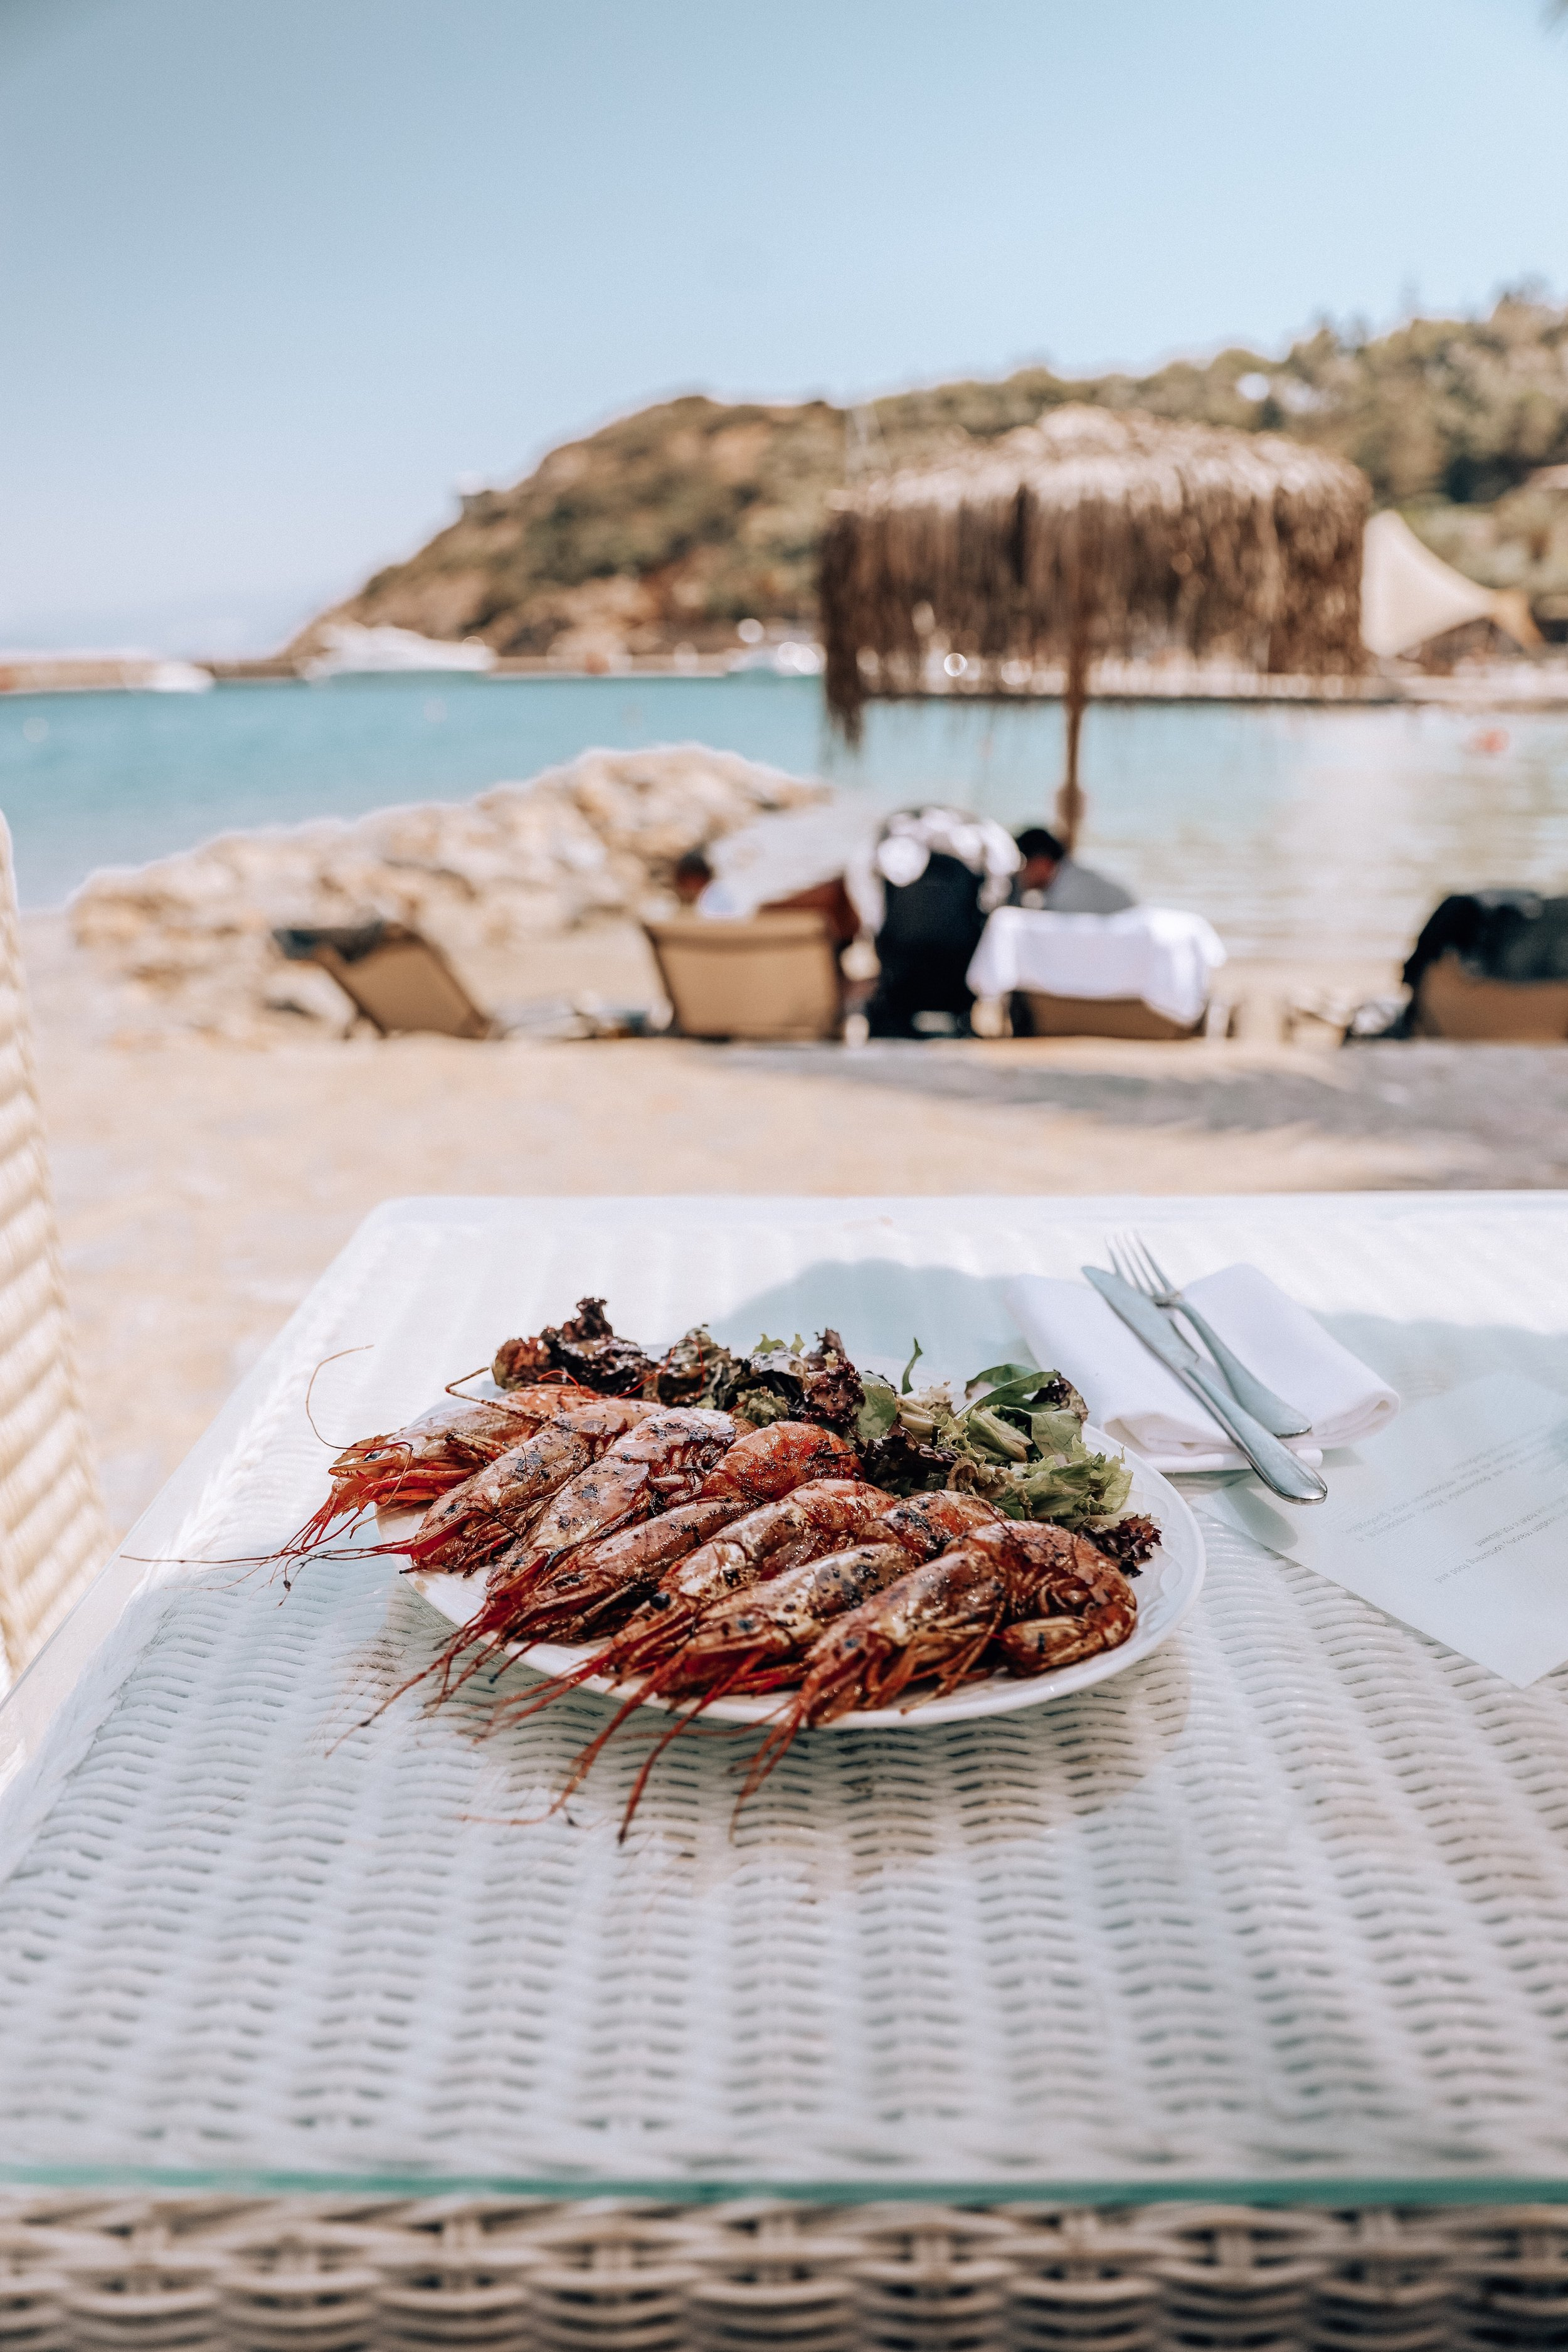 Grill House - The most delicious grilled shrimps on the beach for lunch..